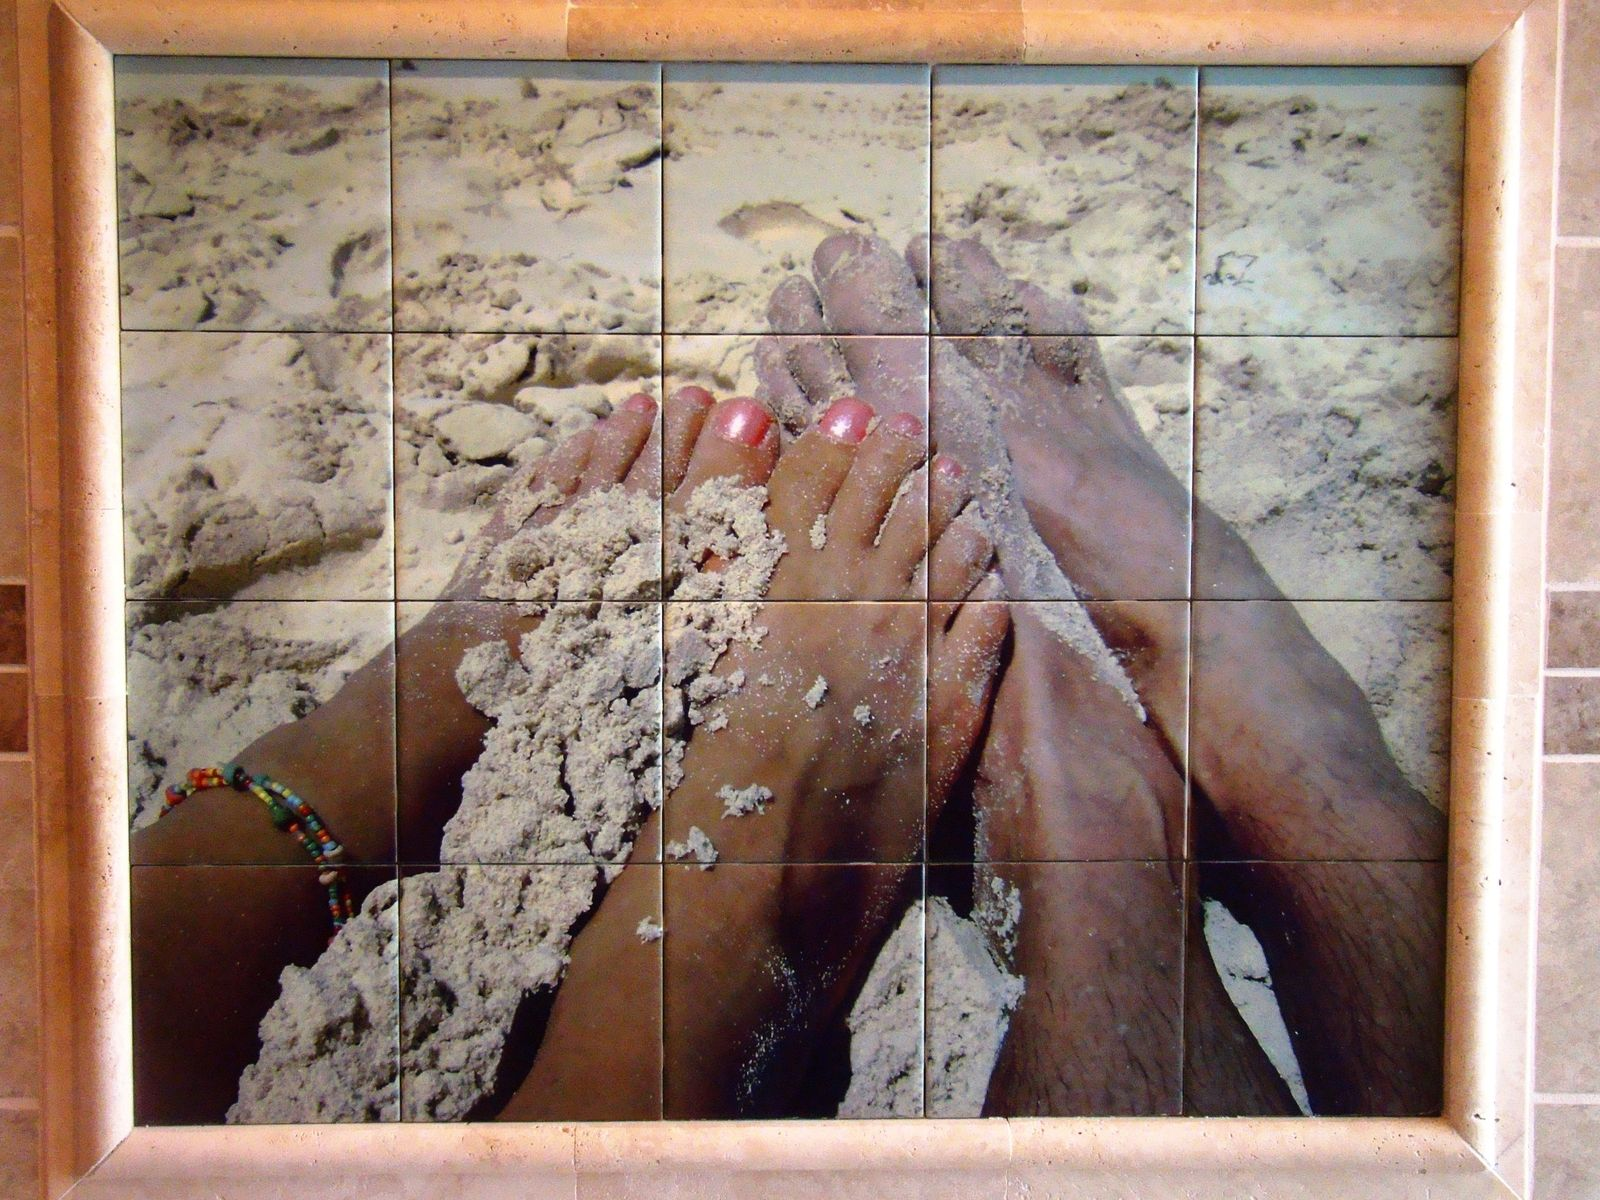 Hand Crafted Custom Ceramic Tile Mural Install 3 32 X 40 Using